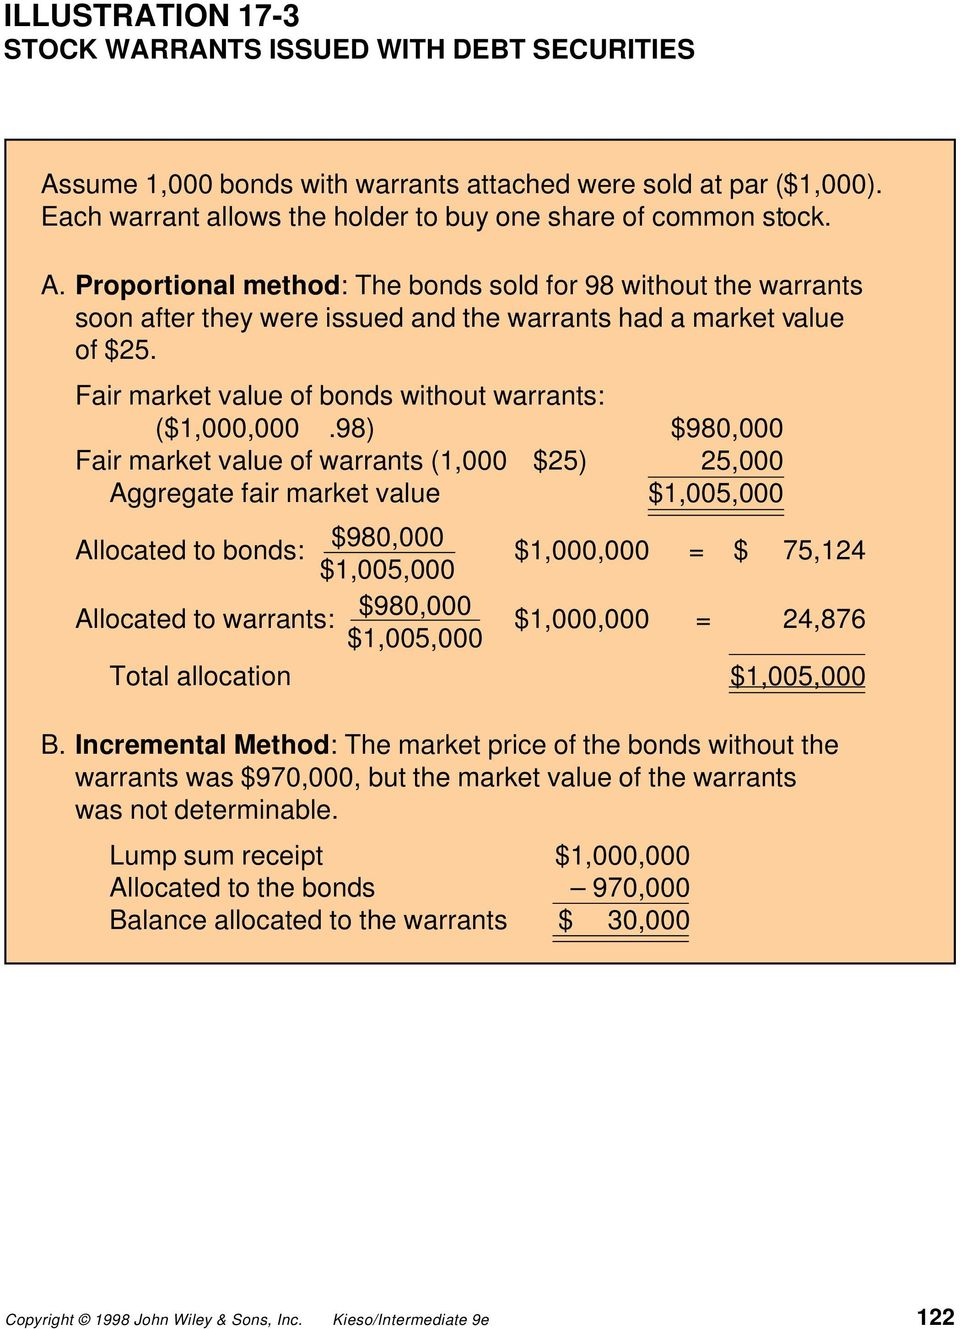 98) $980,000 Fair market value of warrants (1,000 $25) 25,000 Aggregate fair market value $1,005,000 Allocated to bonds: $980,000 $1,005,000 $1,000,000 = $ 75,124 Allocated to warrants: $980,000